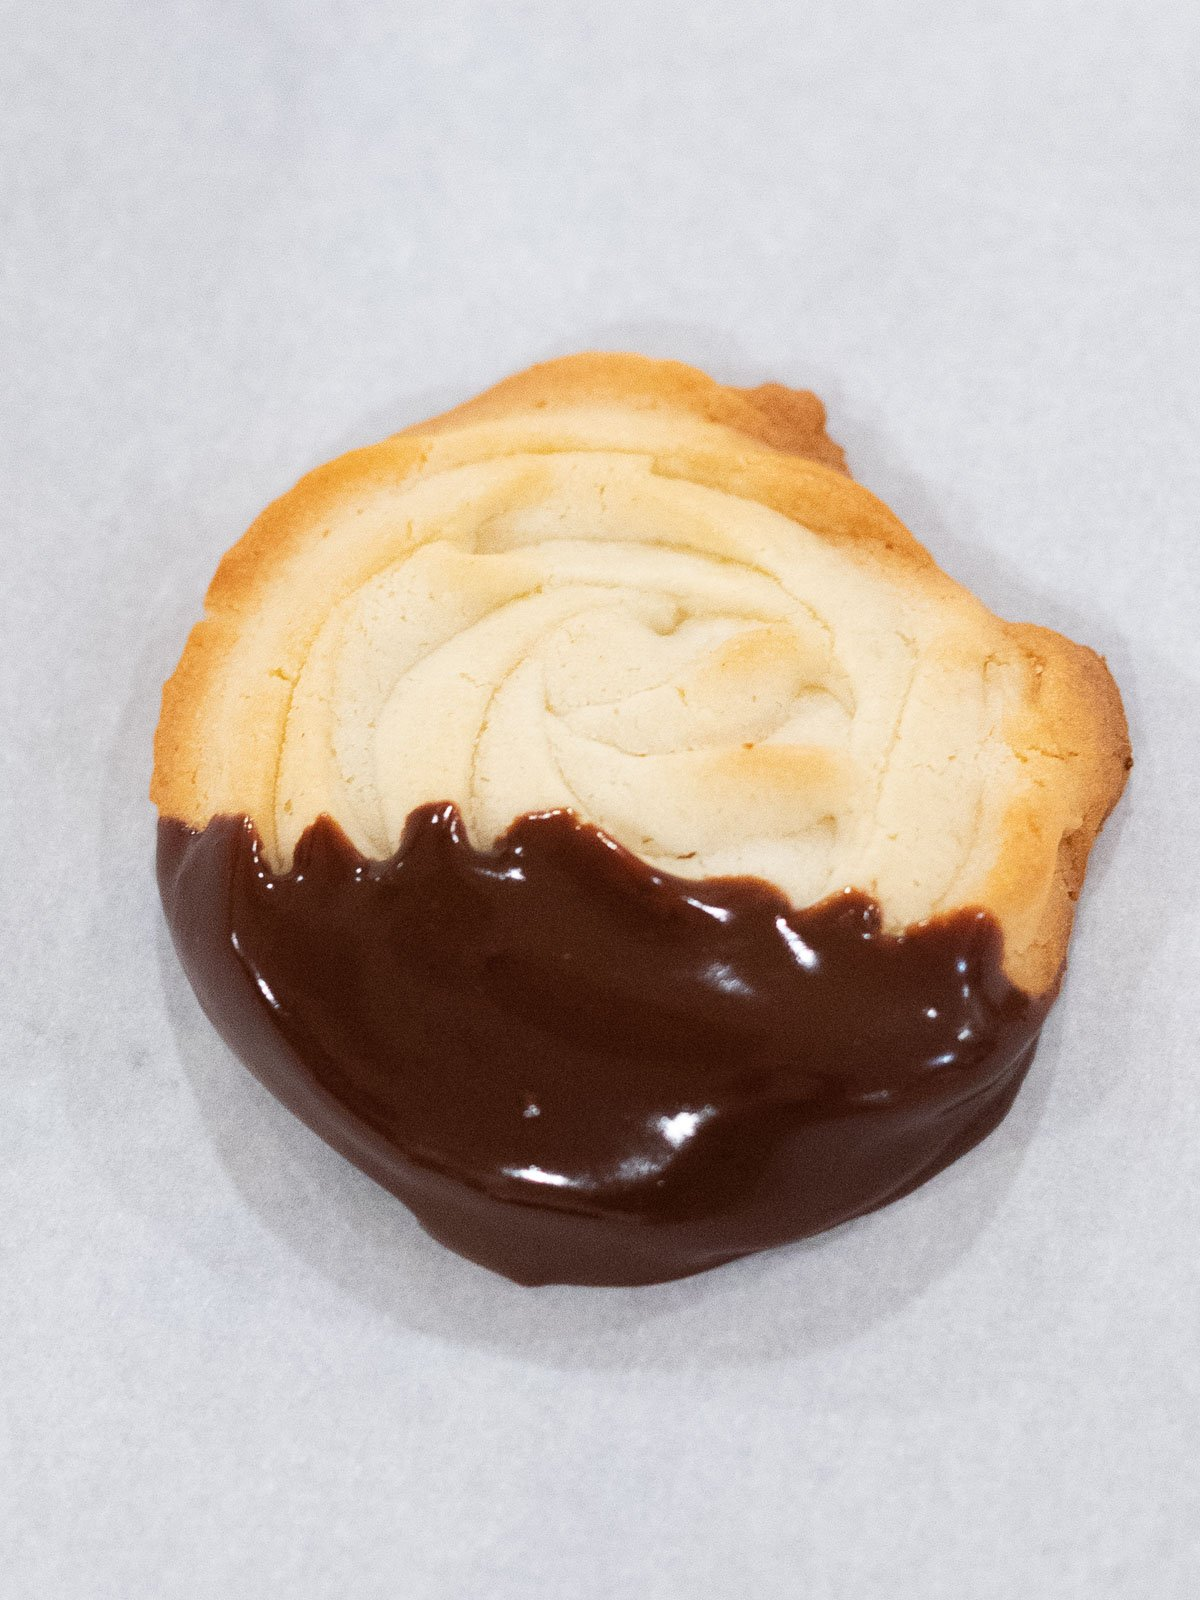 butter cookie dipped in chocolate on parchment paper